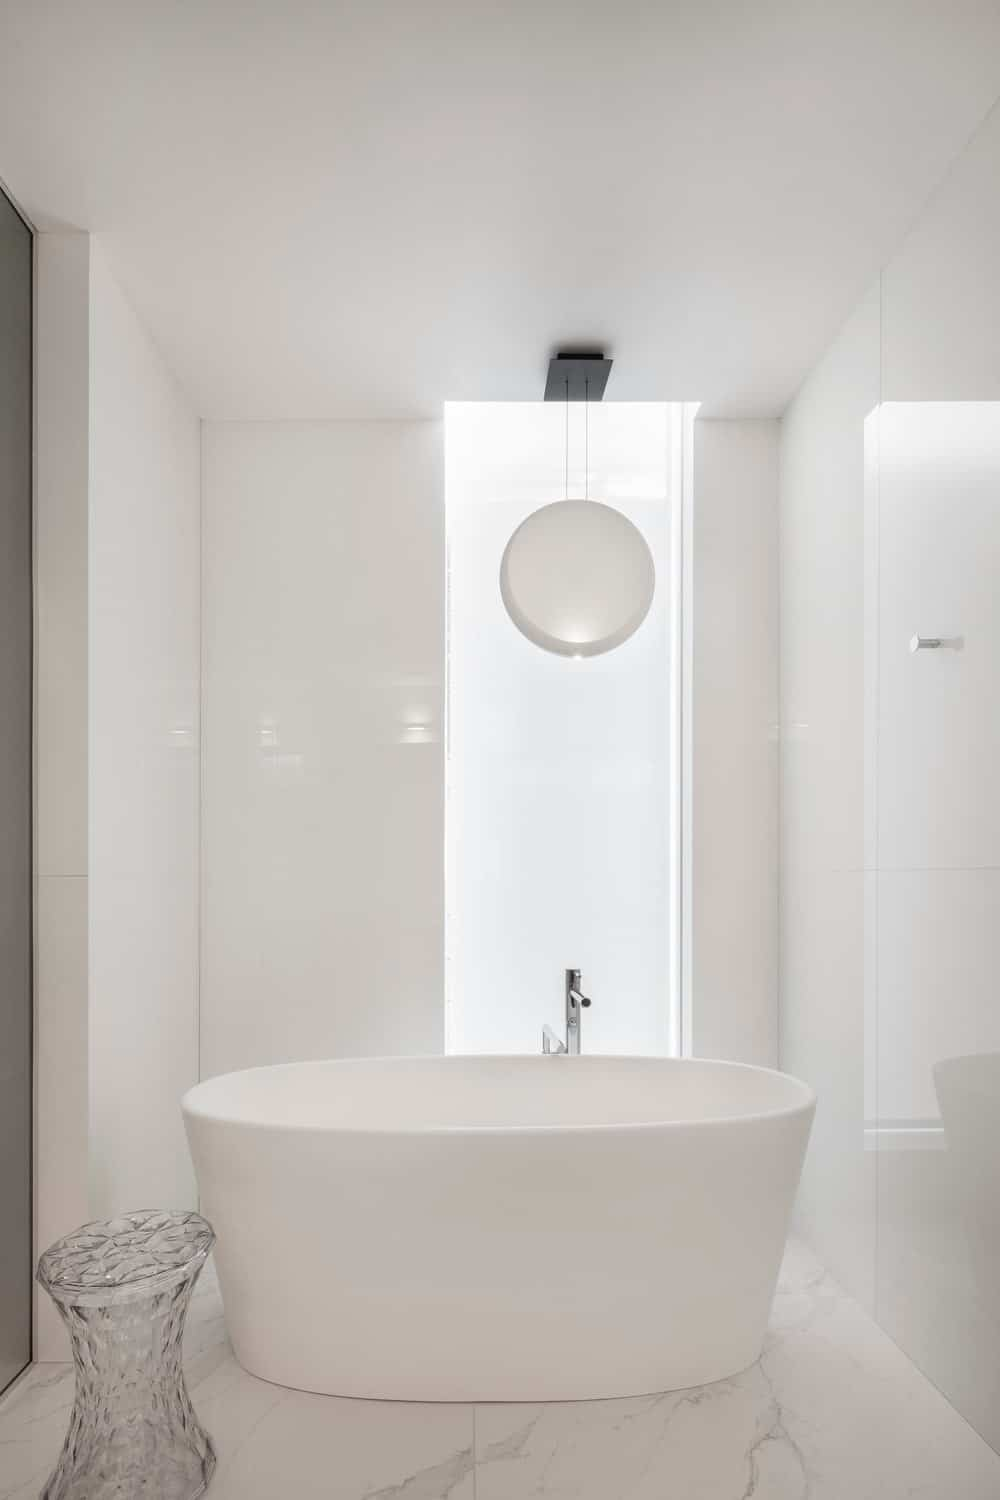 Pure white bathroom with marble flooring and freestanding tub along with walk-in shower. Photo Credit: Adrien Williams